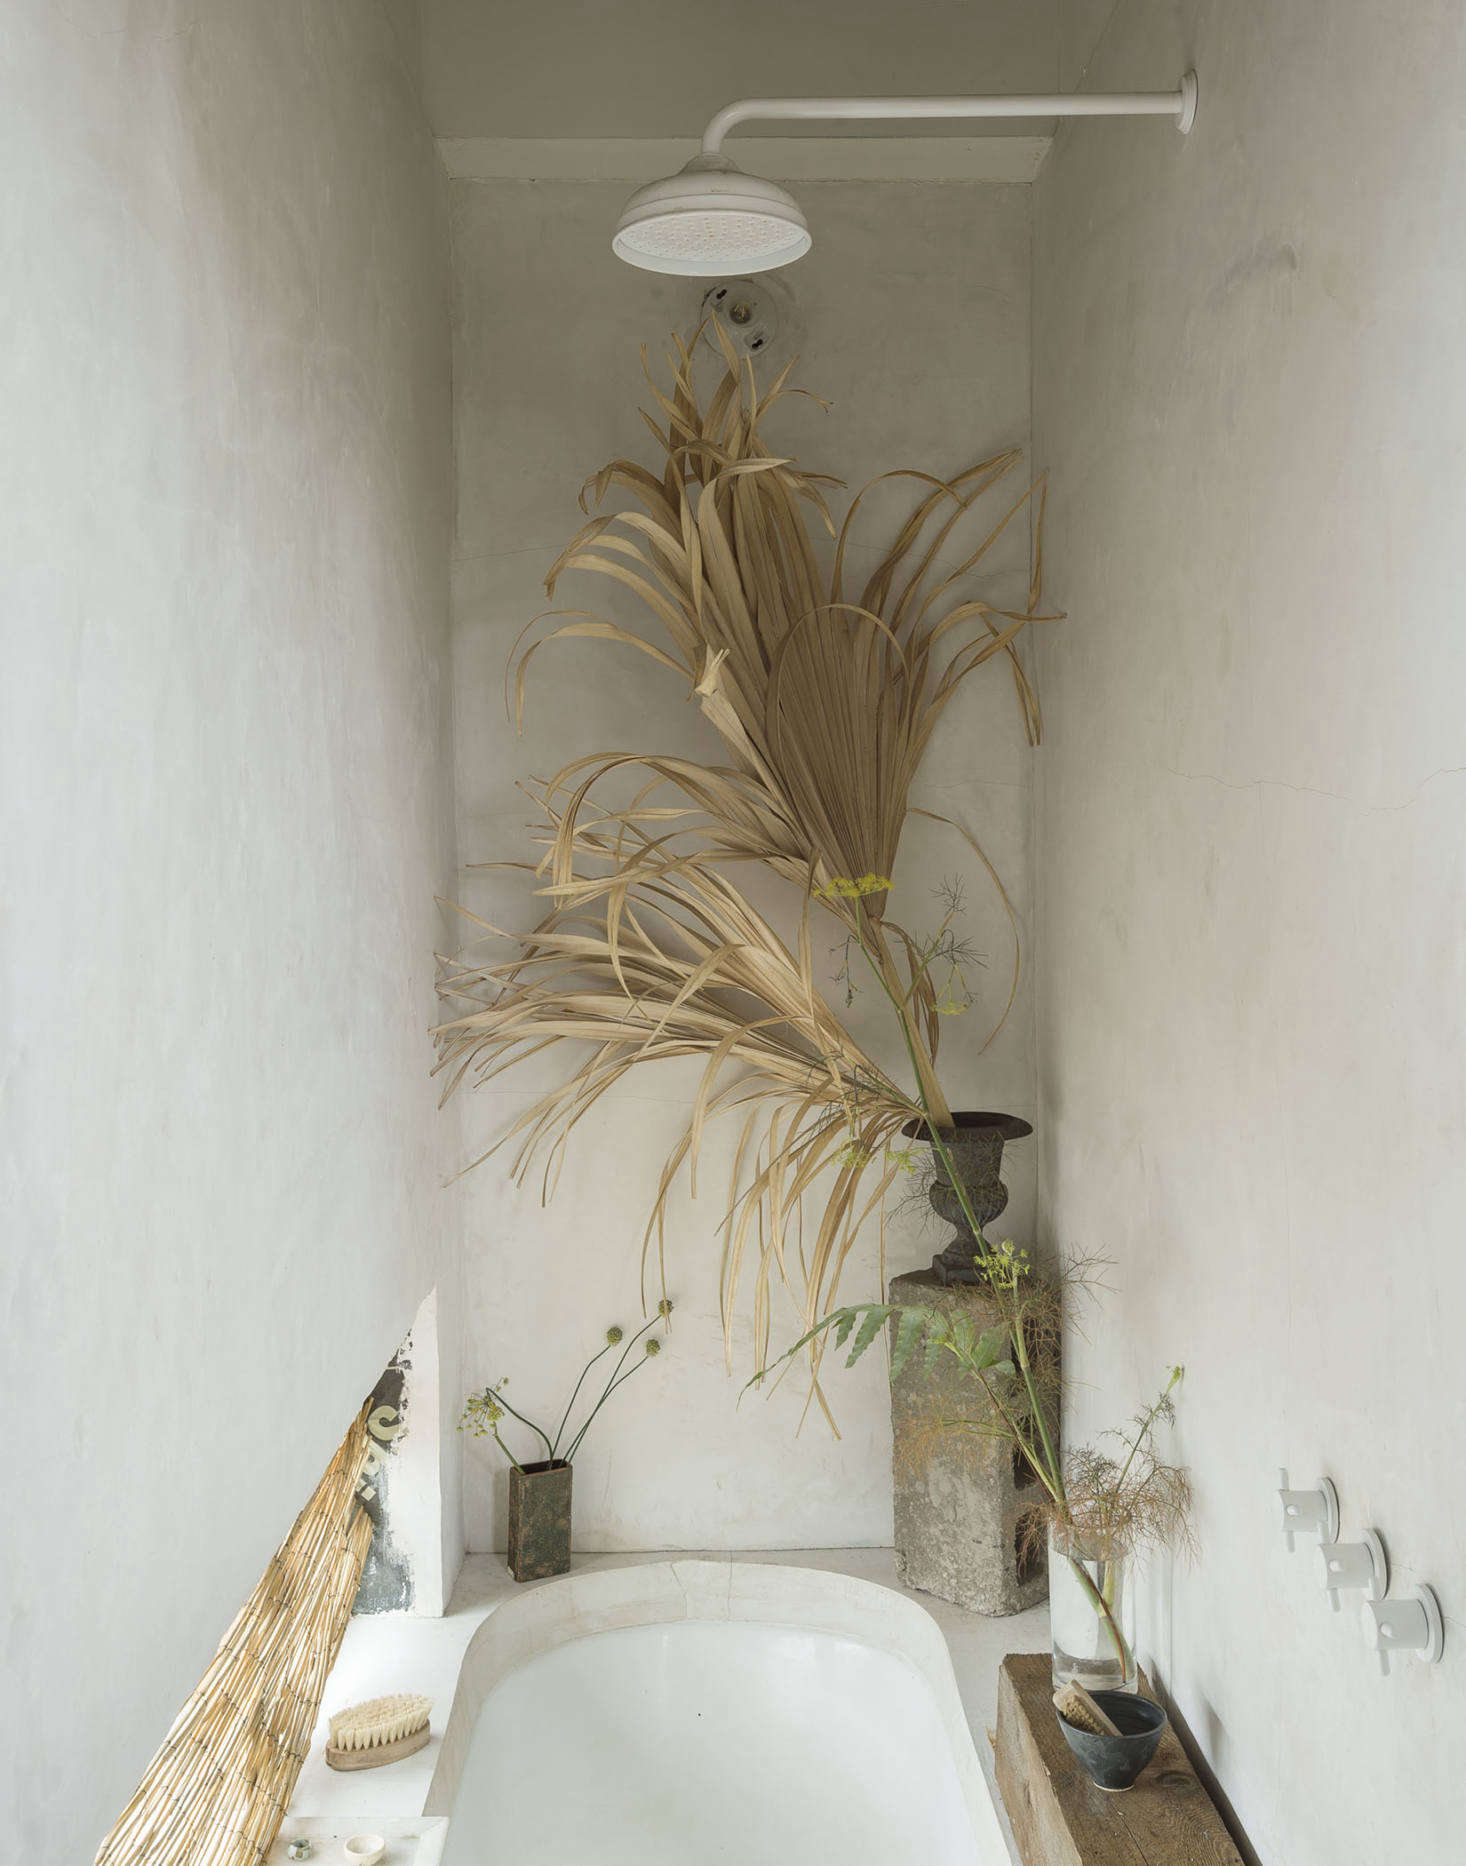 The sunken tub is a vintage cast-iron clawfoot that came from one of Fabr's earliest building projects, and the fixtures and tile were all leftovers from various other projects. The tub is surrounded by a 4-inch concrete topper, and the walls are cement stucco. The shower fixtures are from California Faucets.